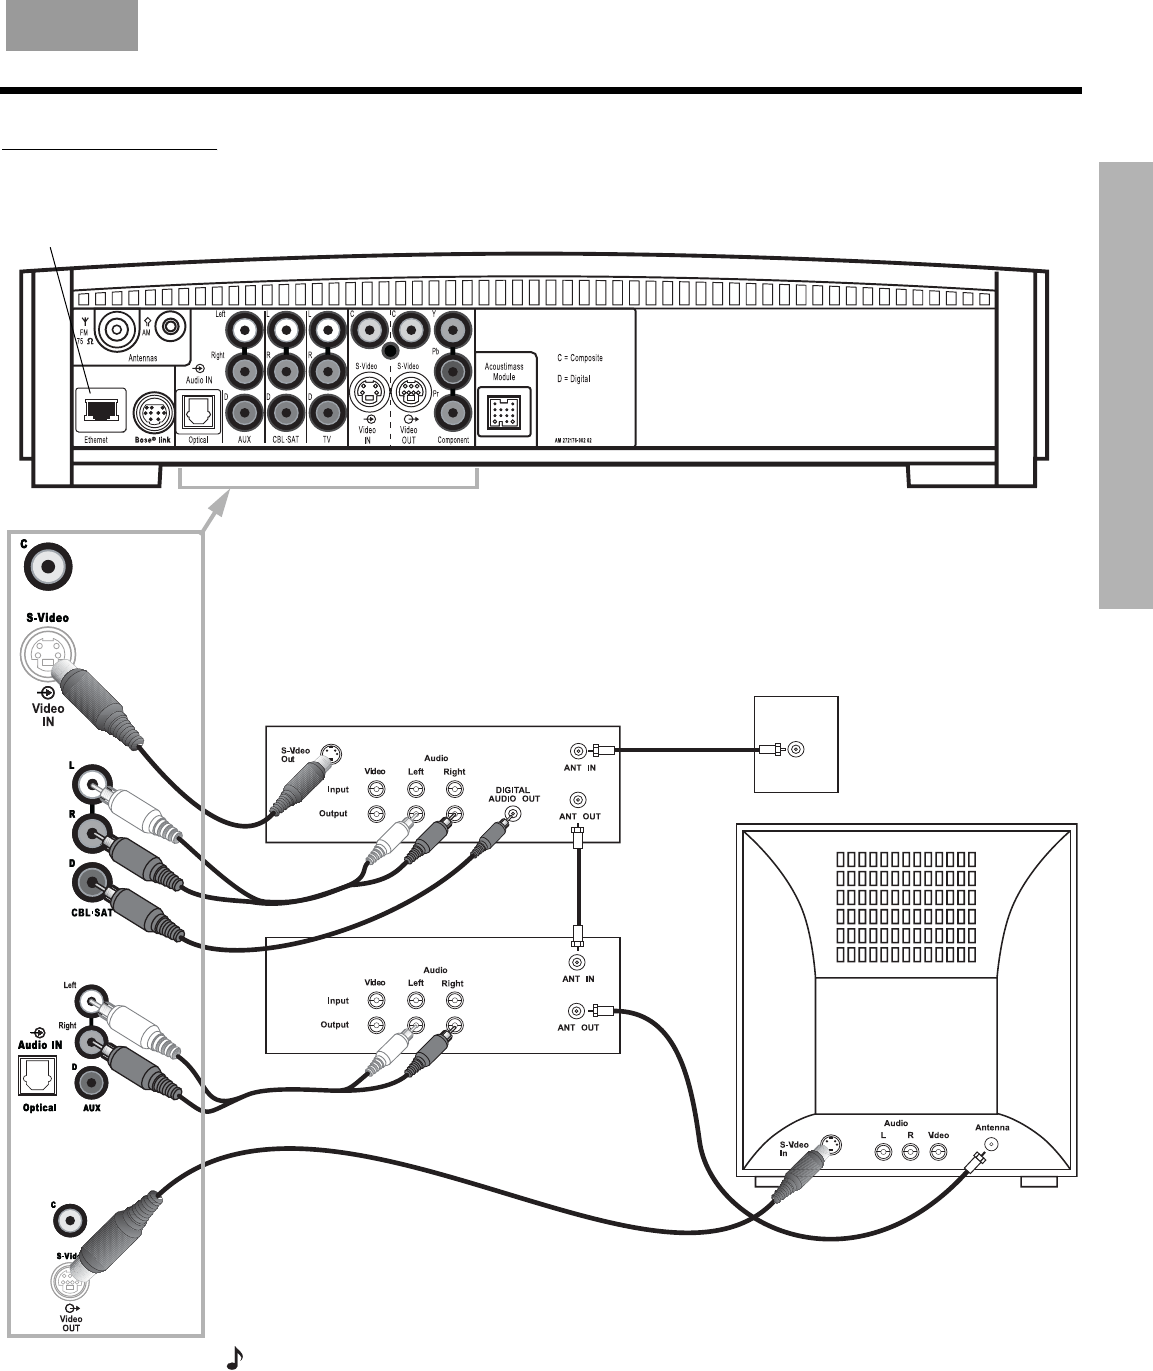 Bose 321 GSX User Manual To The D1f3e918 c448 4b91 bf77